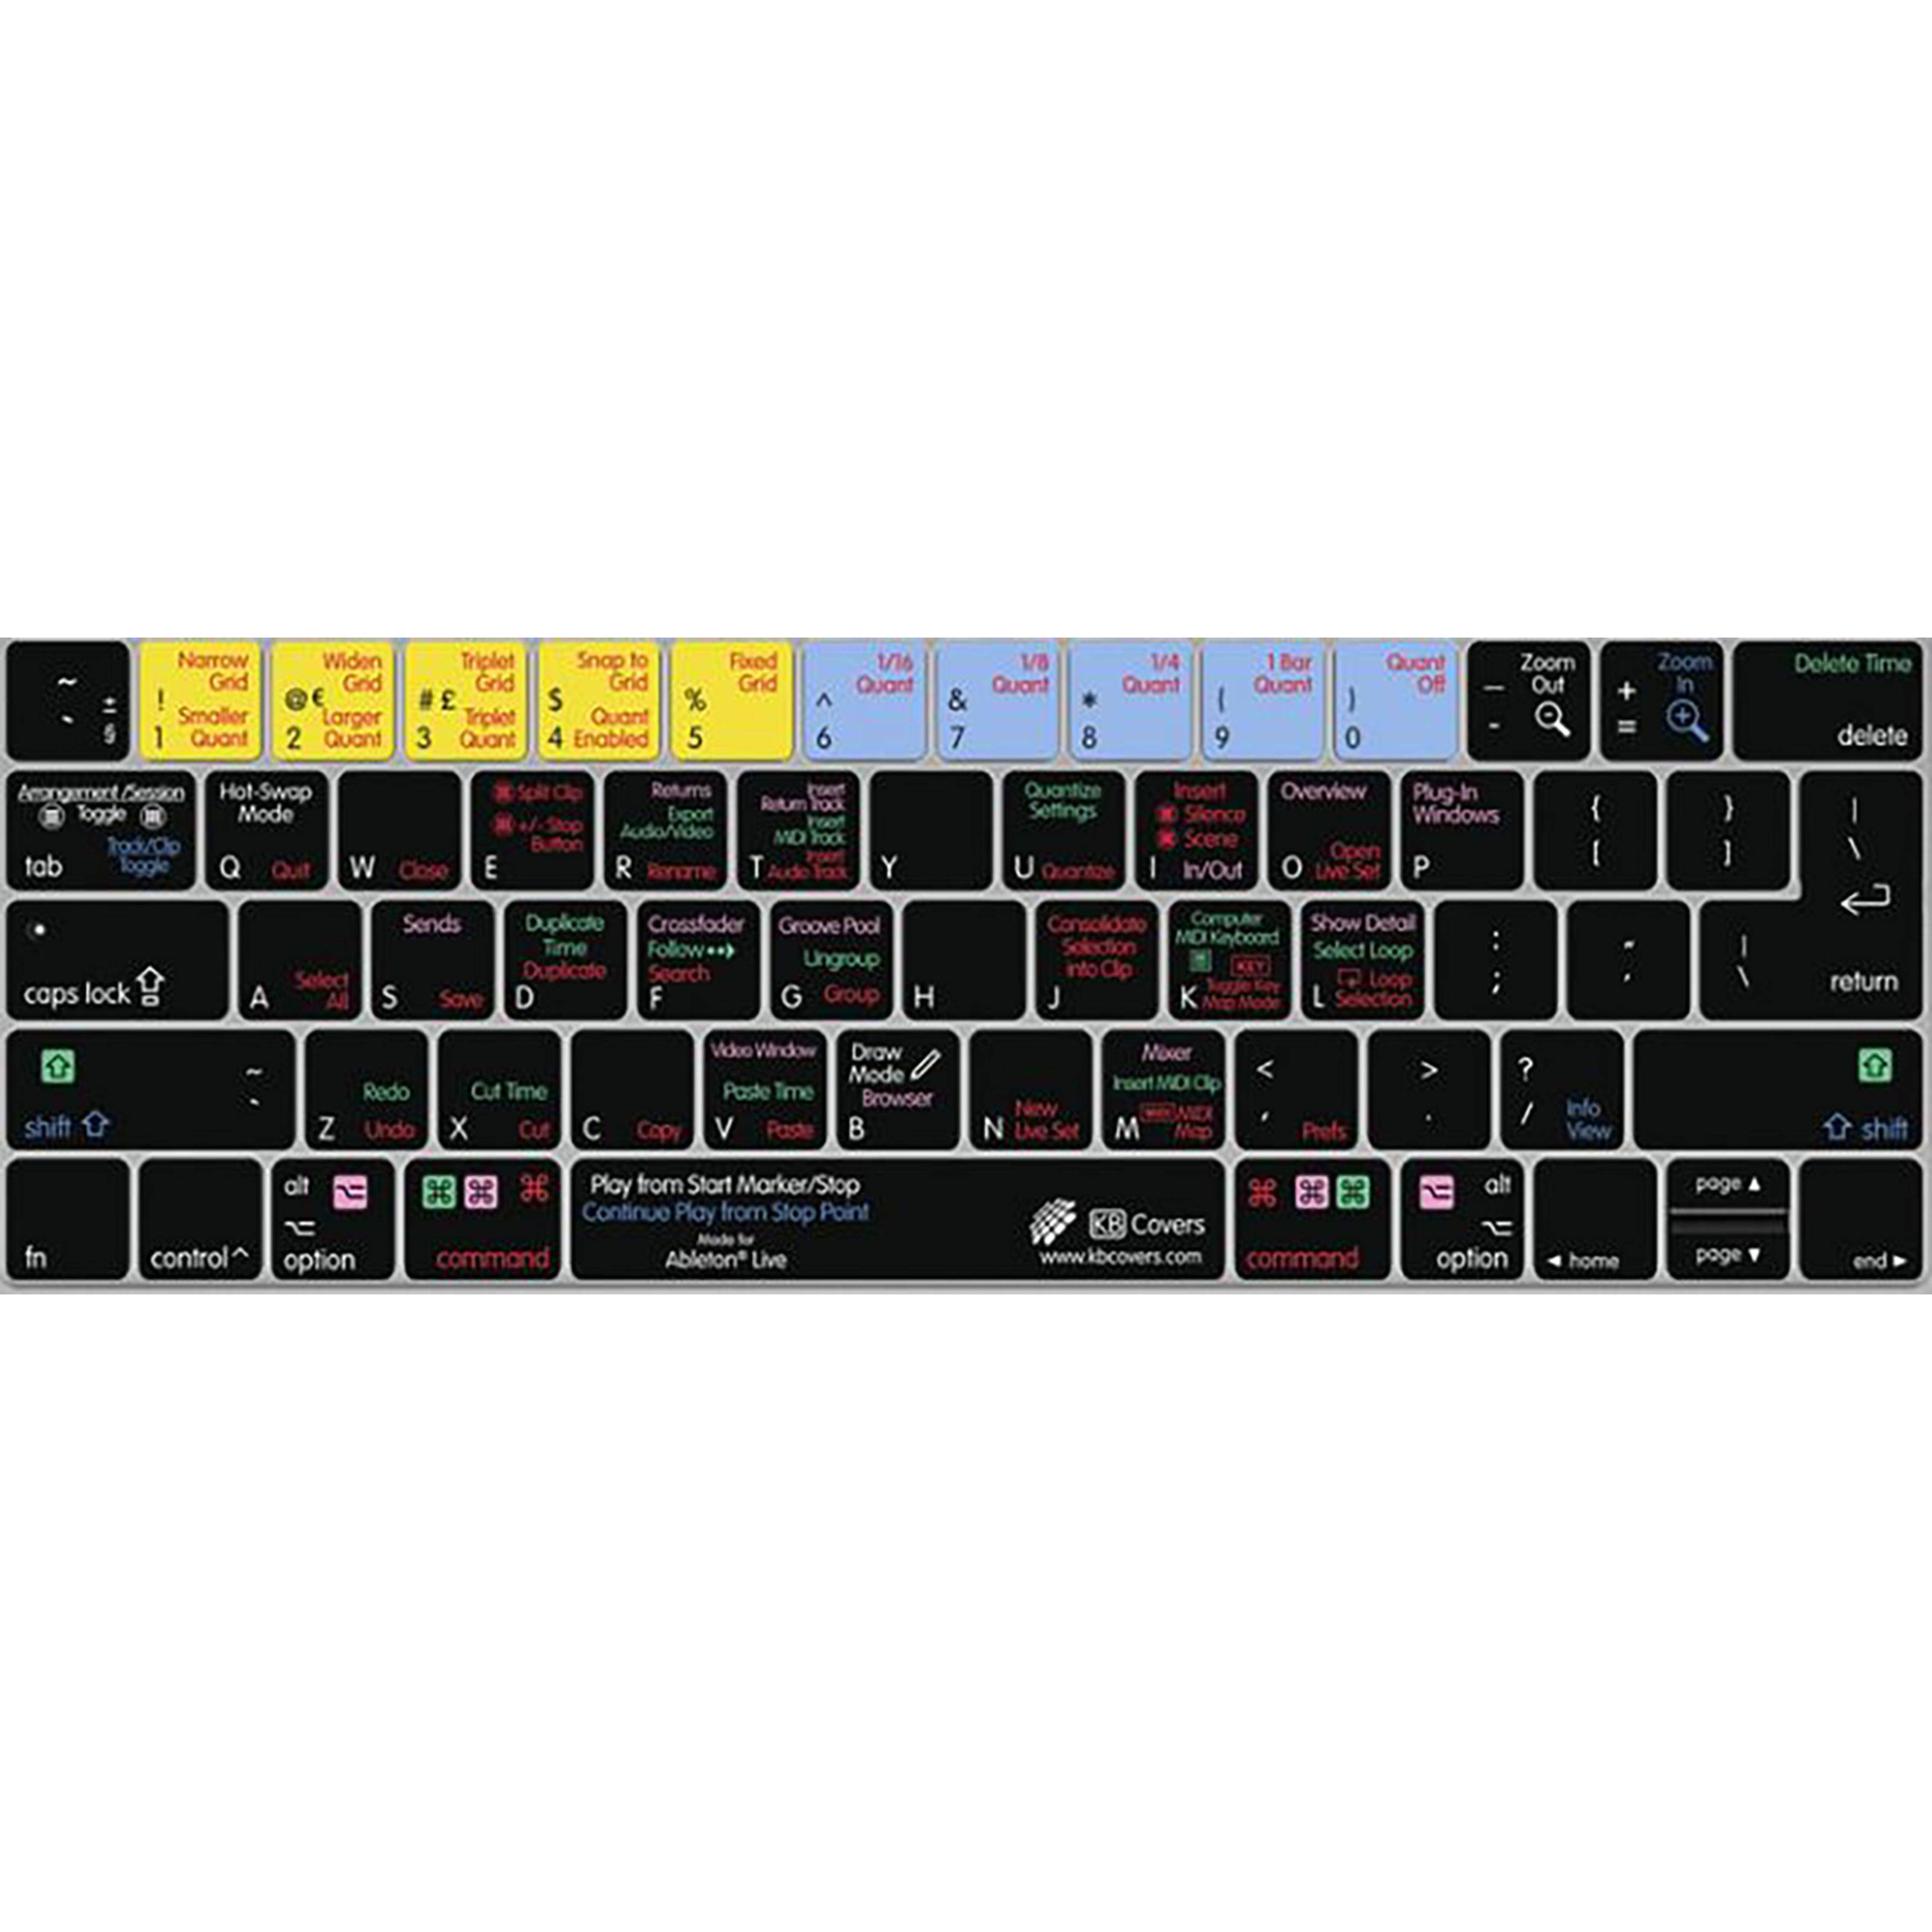 KB Covers Ableton Live Keyboard Cover for MacBook/Air 13/Pro (2008+)